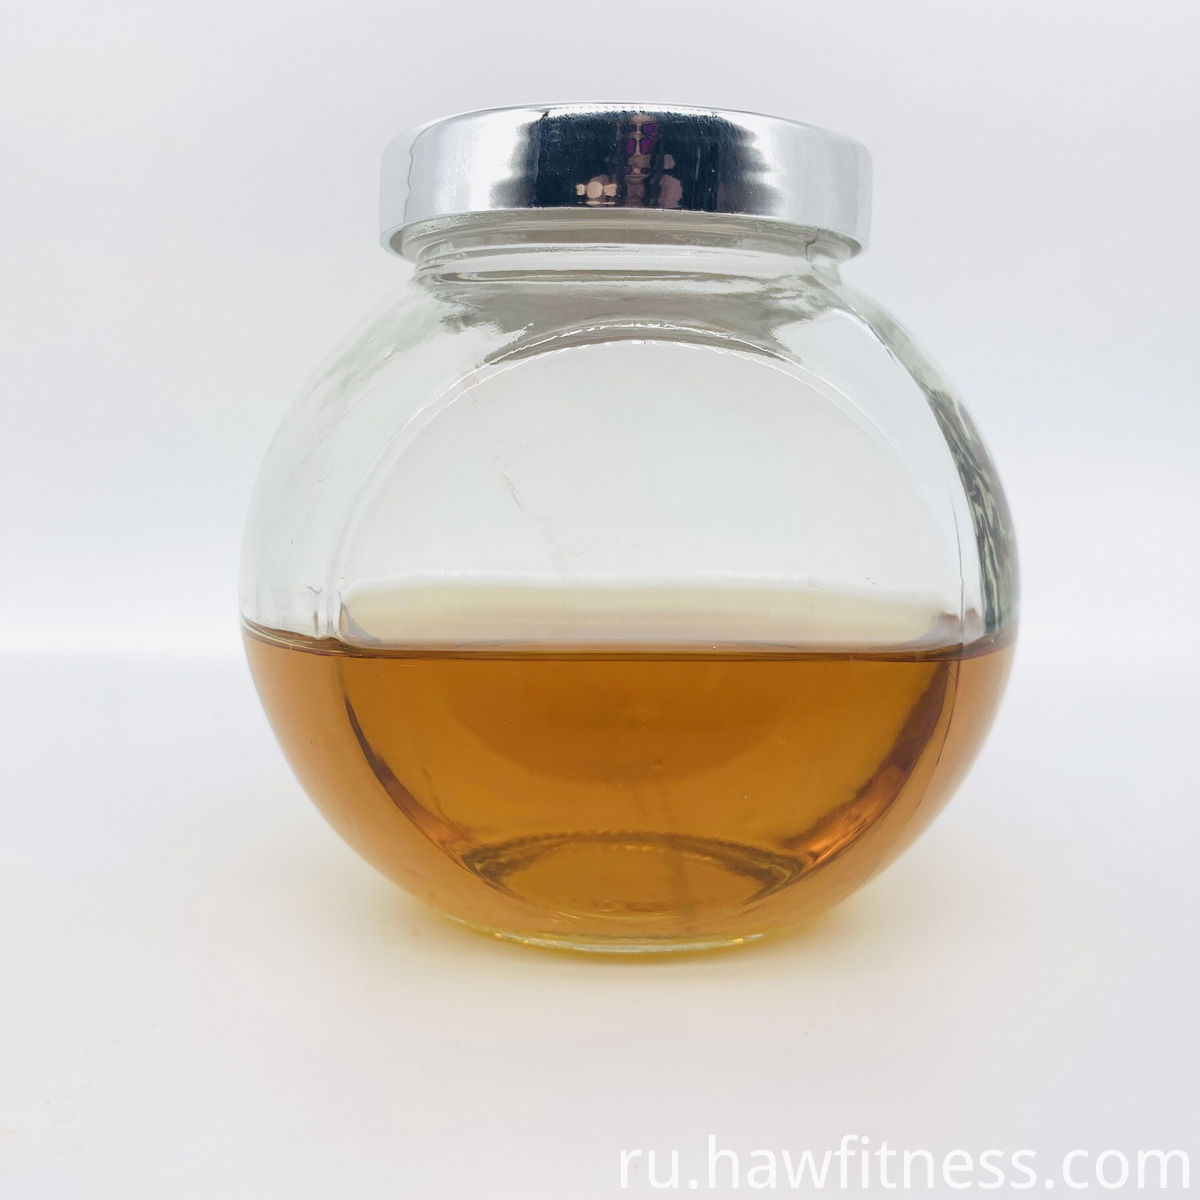 Chrysanthemum Extract for Beverage